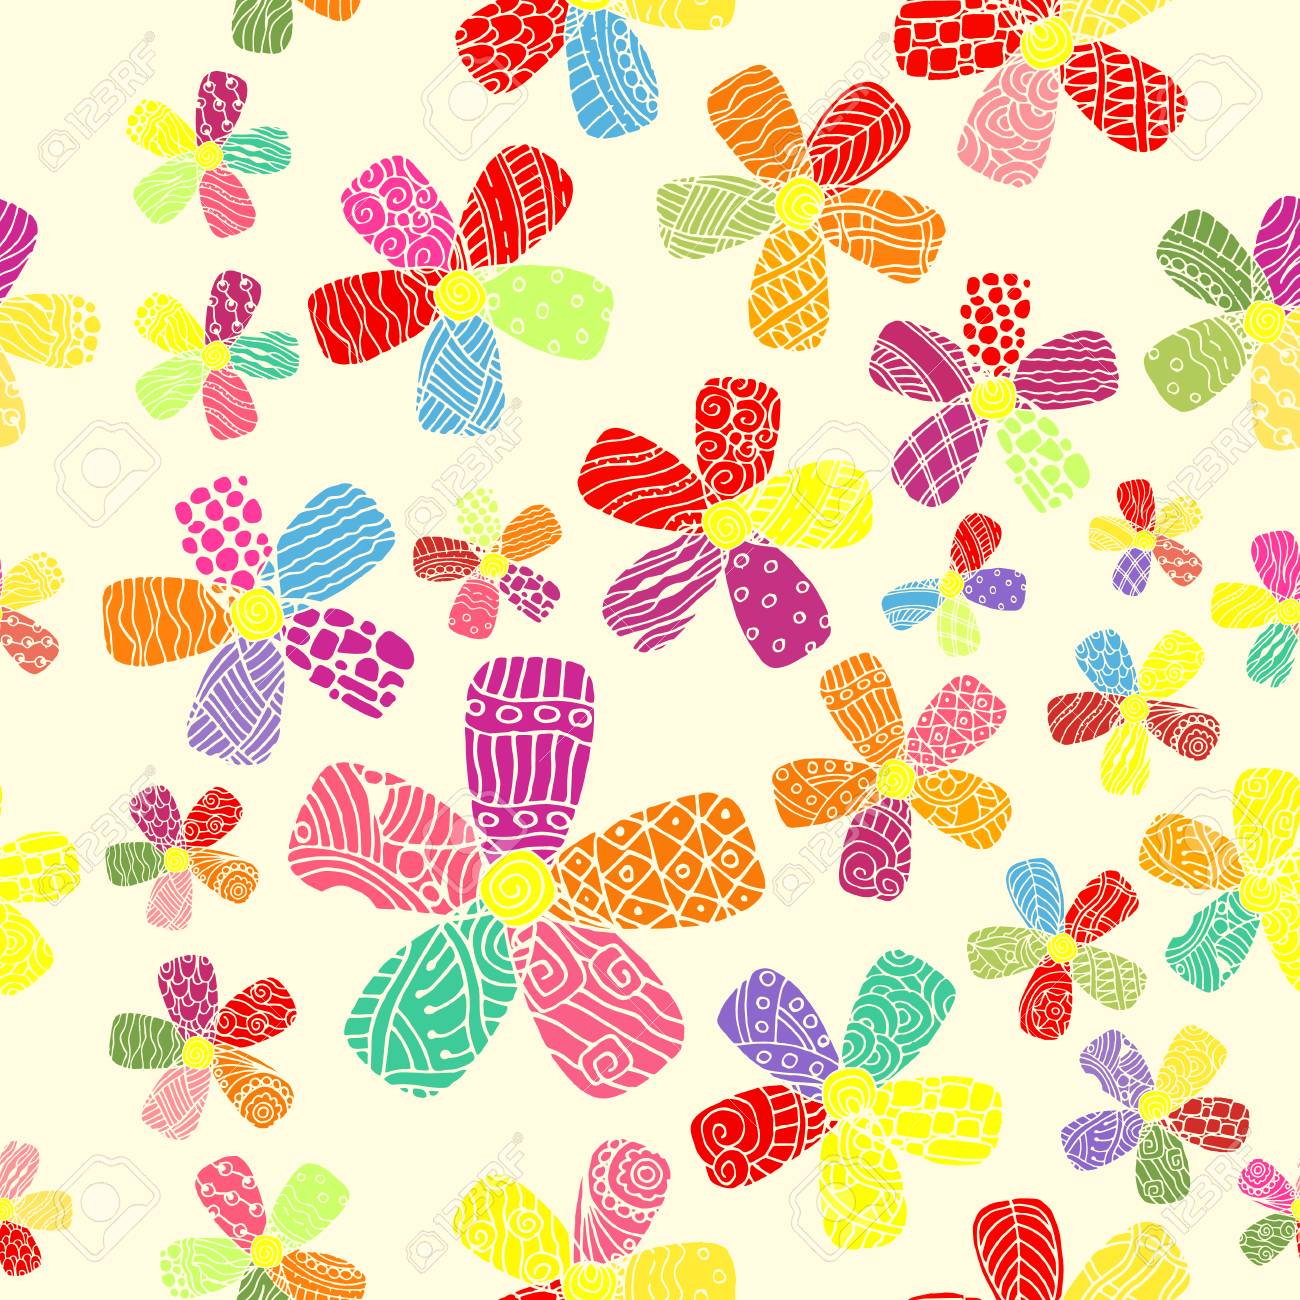 60s Inspired Flower Power Pattern Royalty Free Cliparts Vectors And Stock Illustration Image 71994810